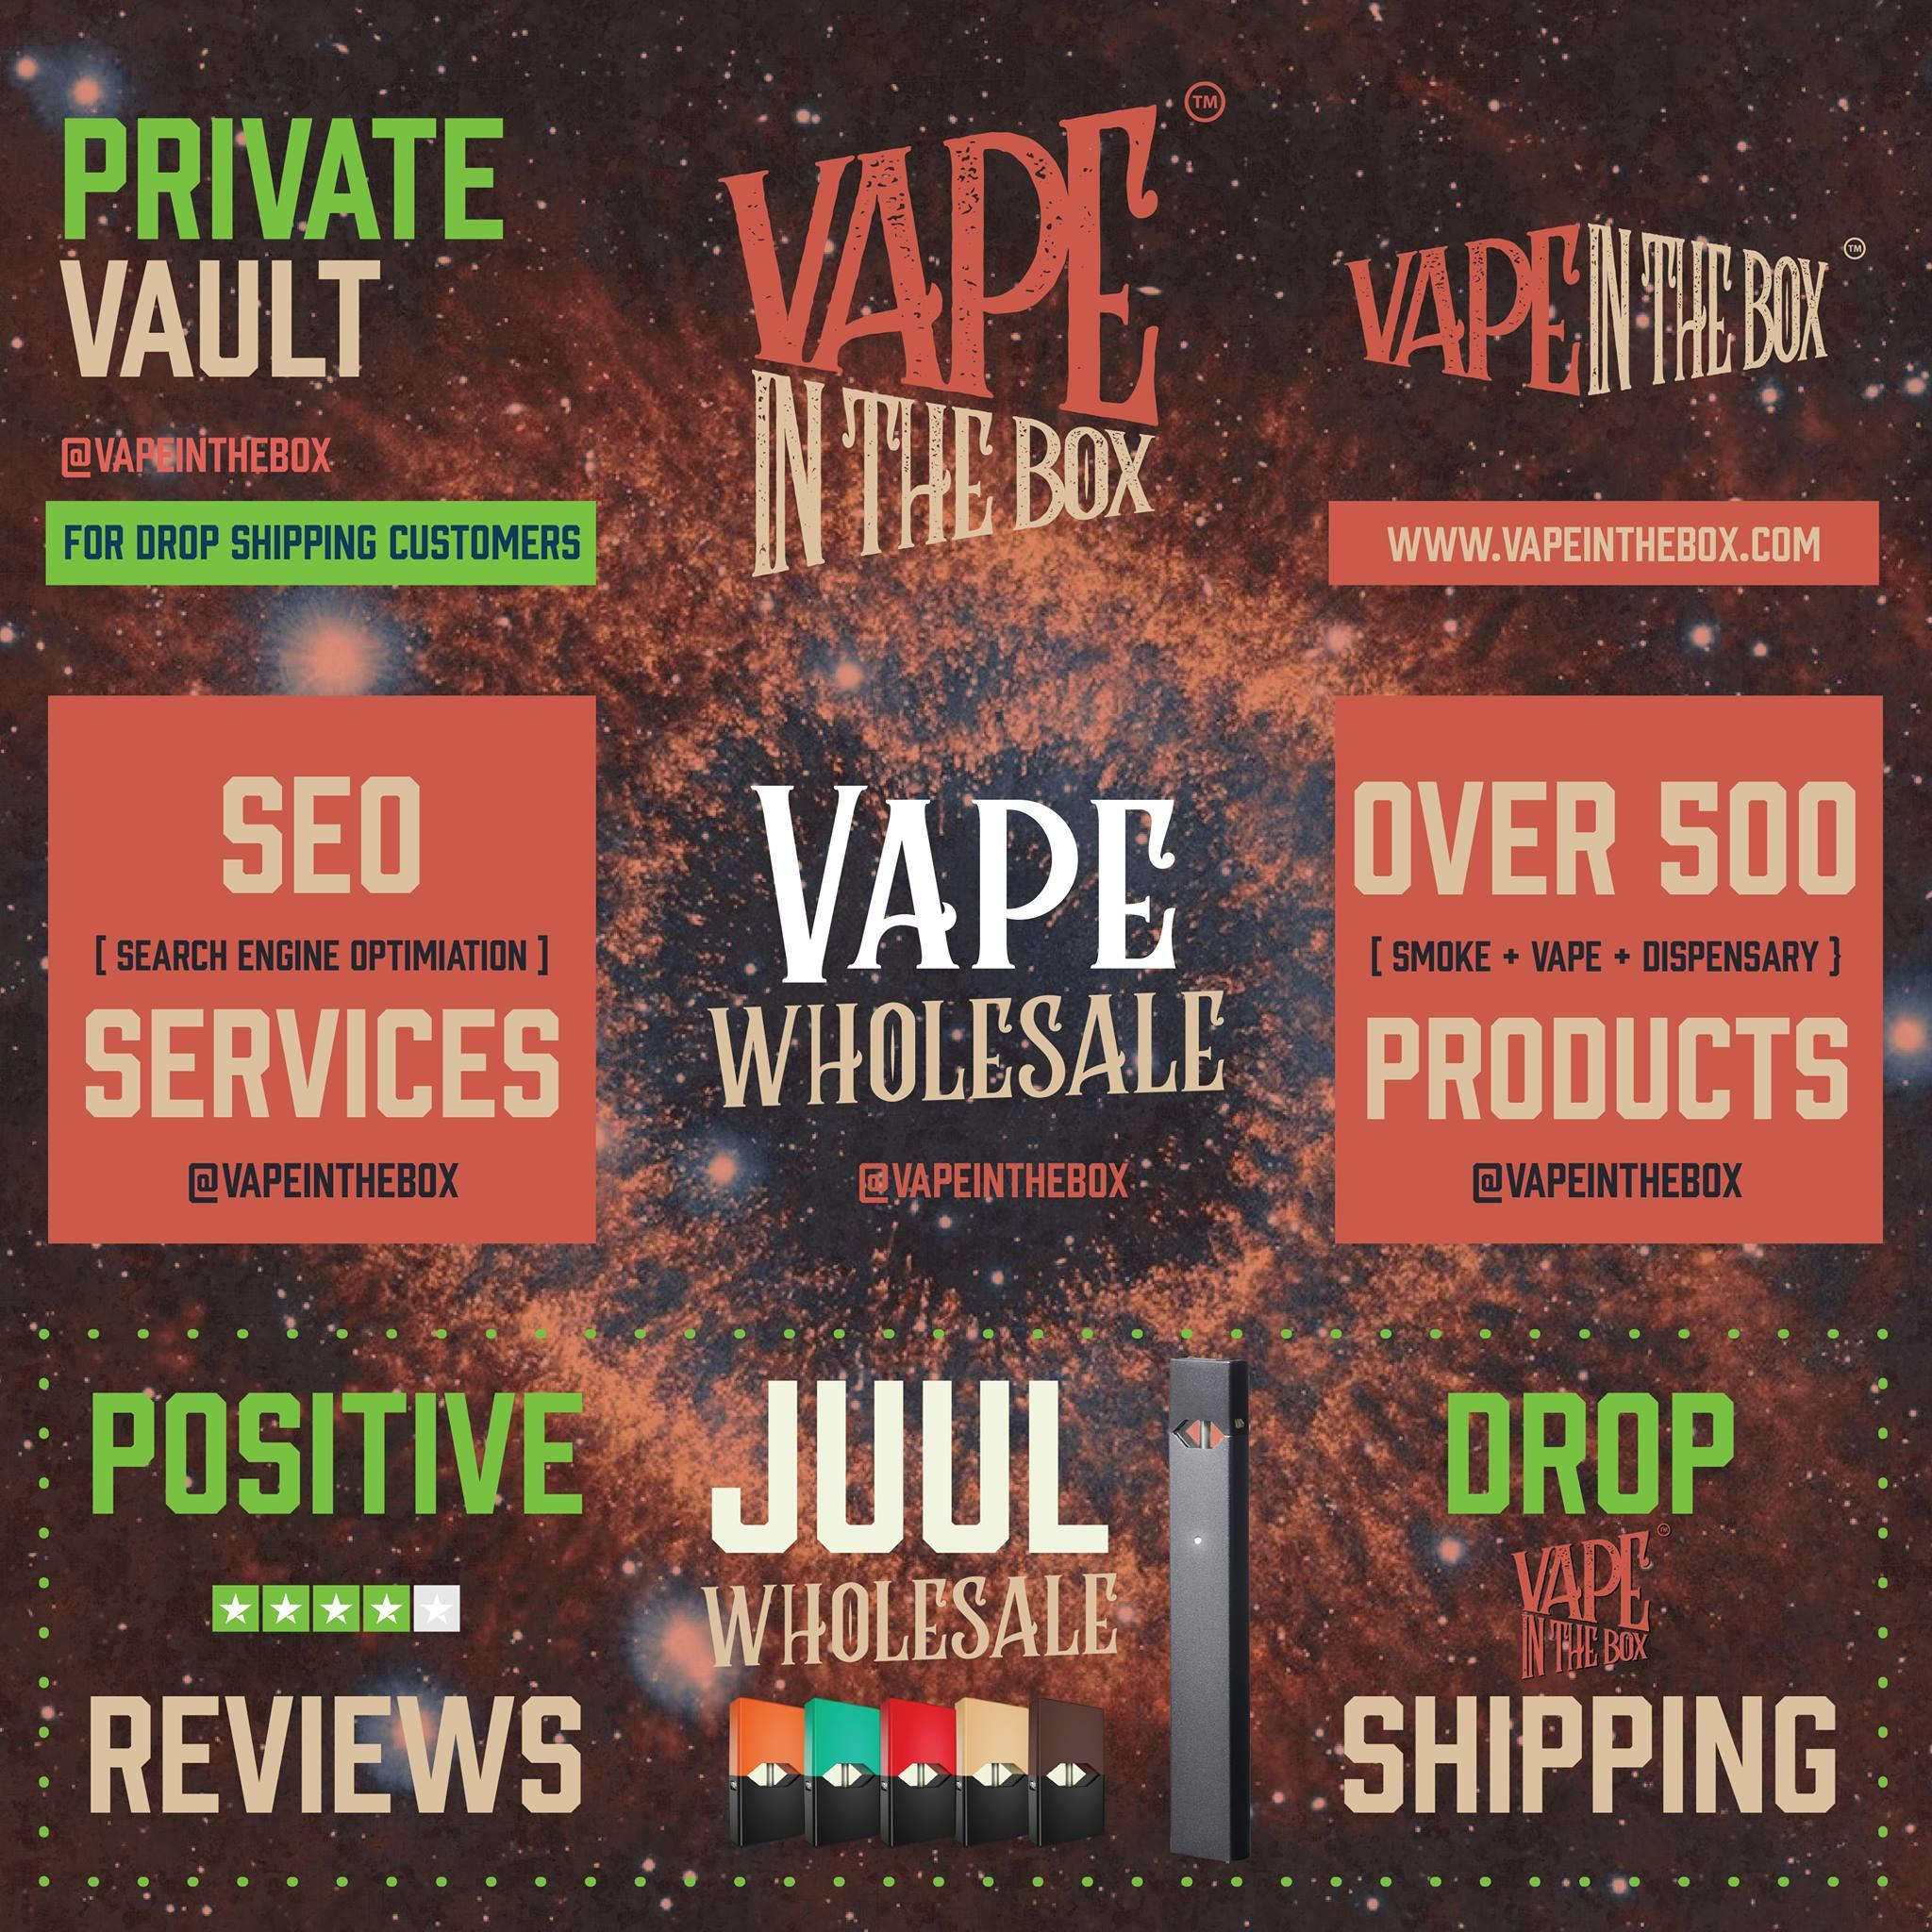 Vape In The Box image 9